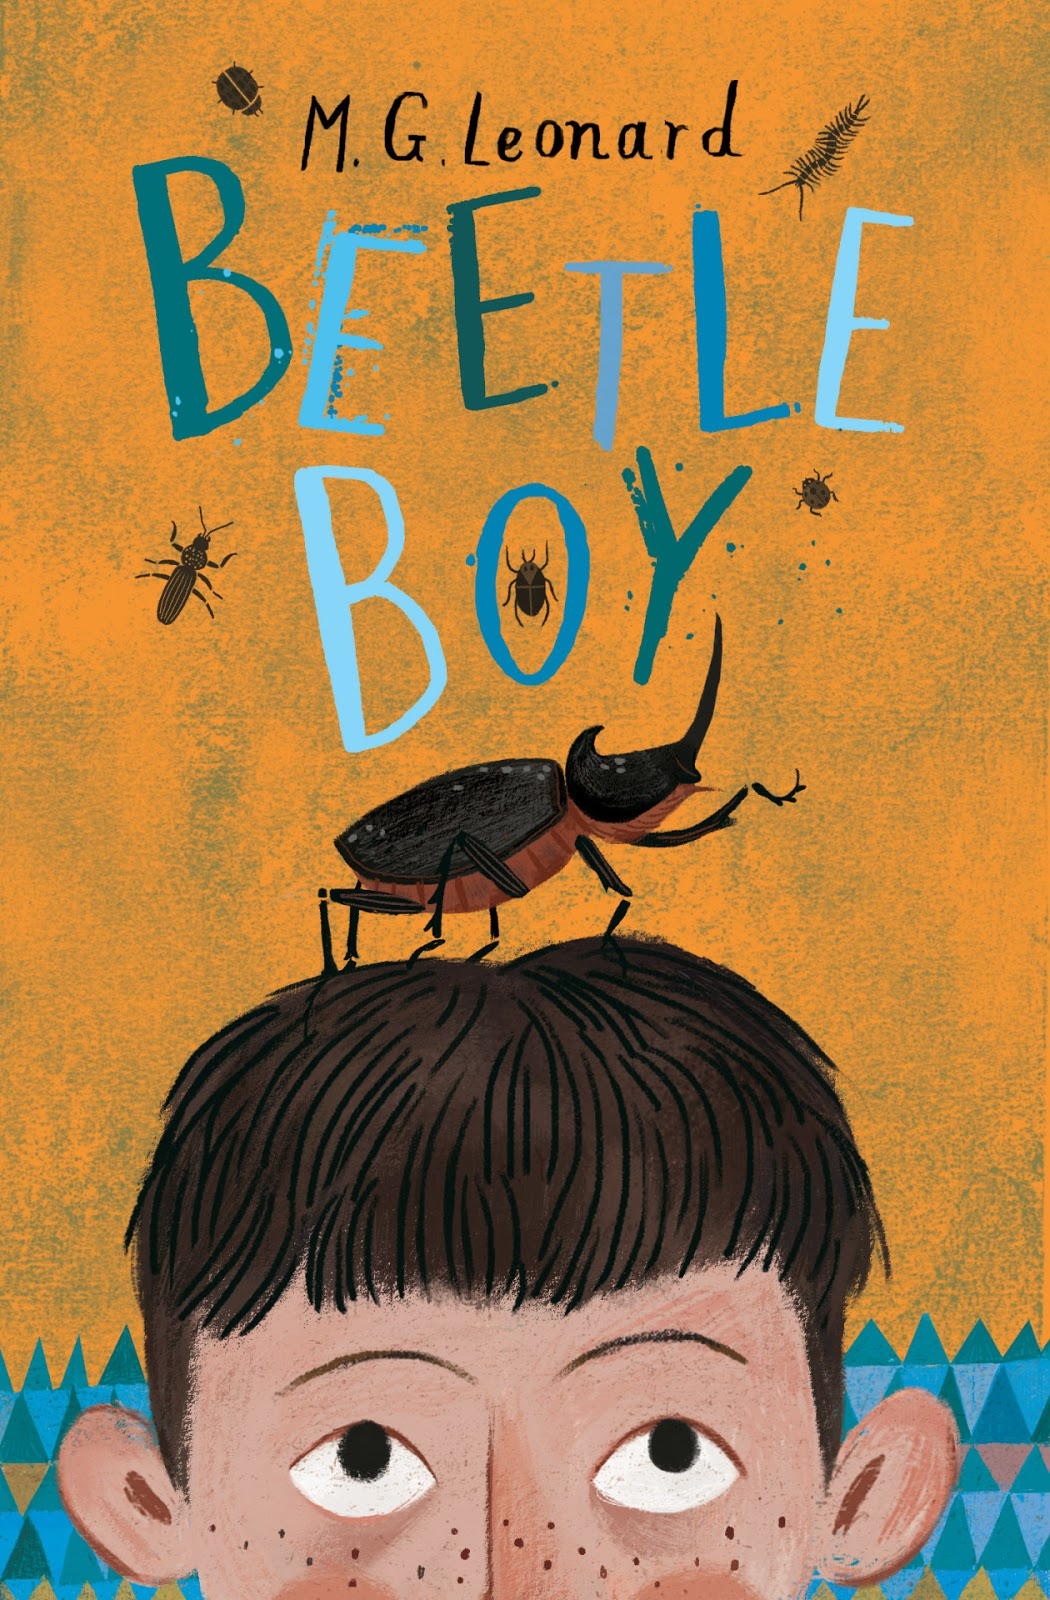 M G Leonard  Beetle Boy (the Battle Of The Beetles) Book Review